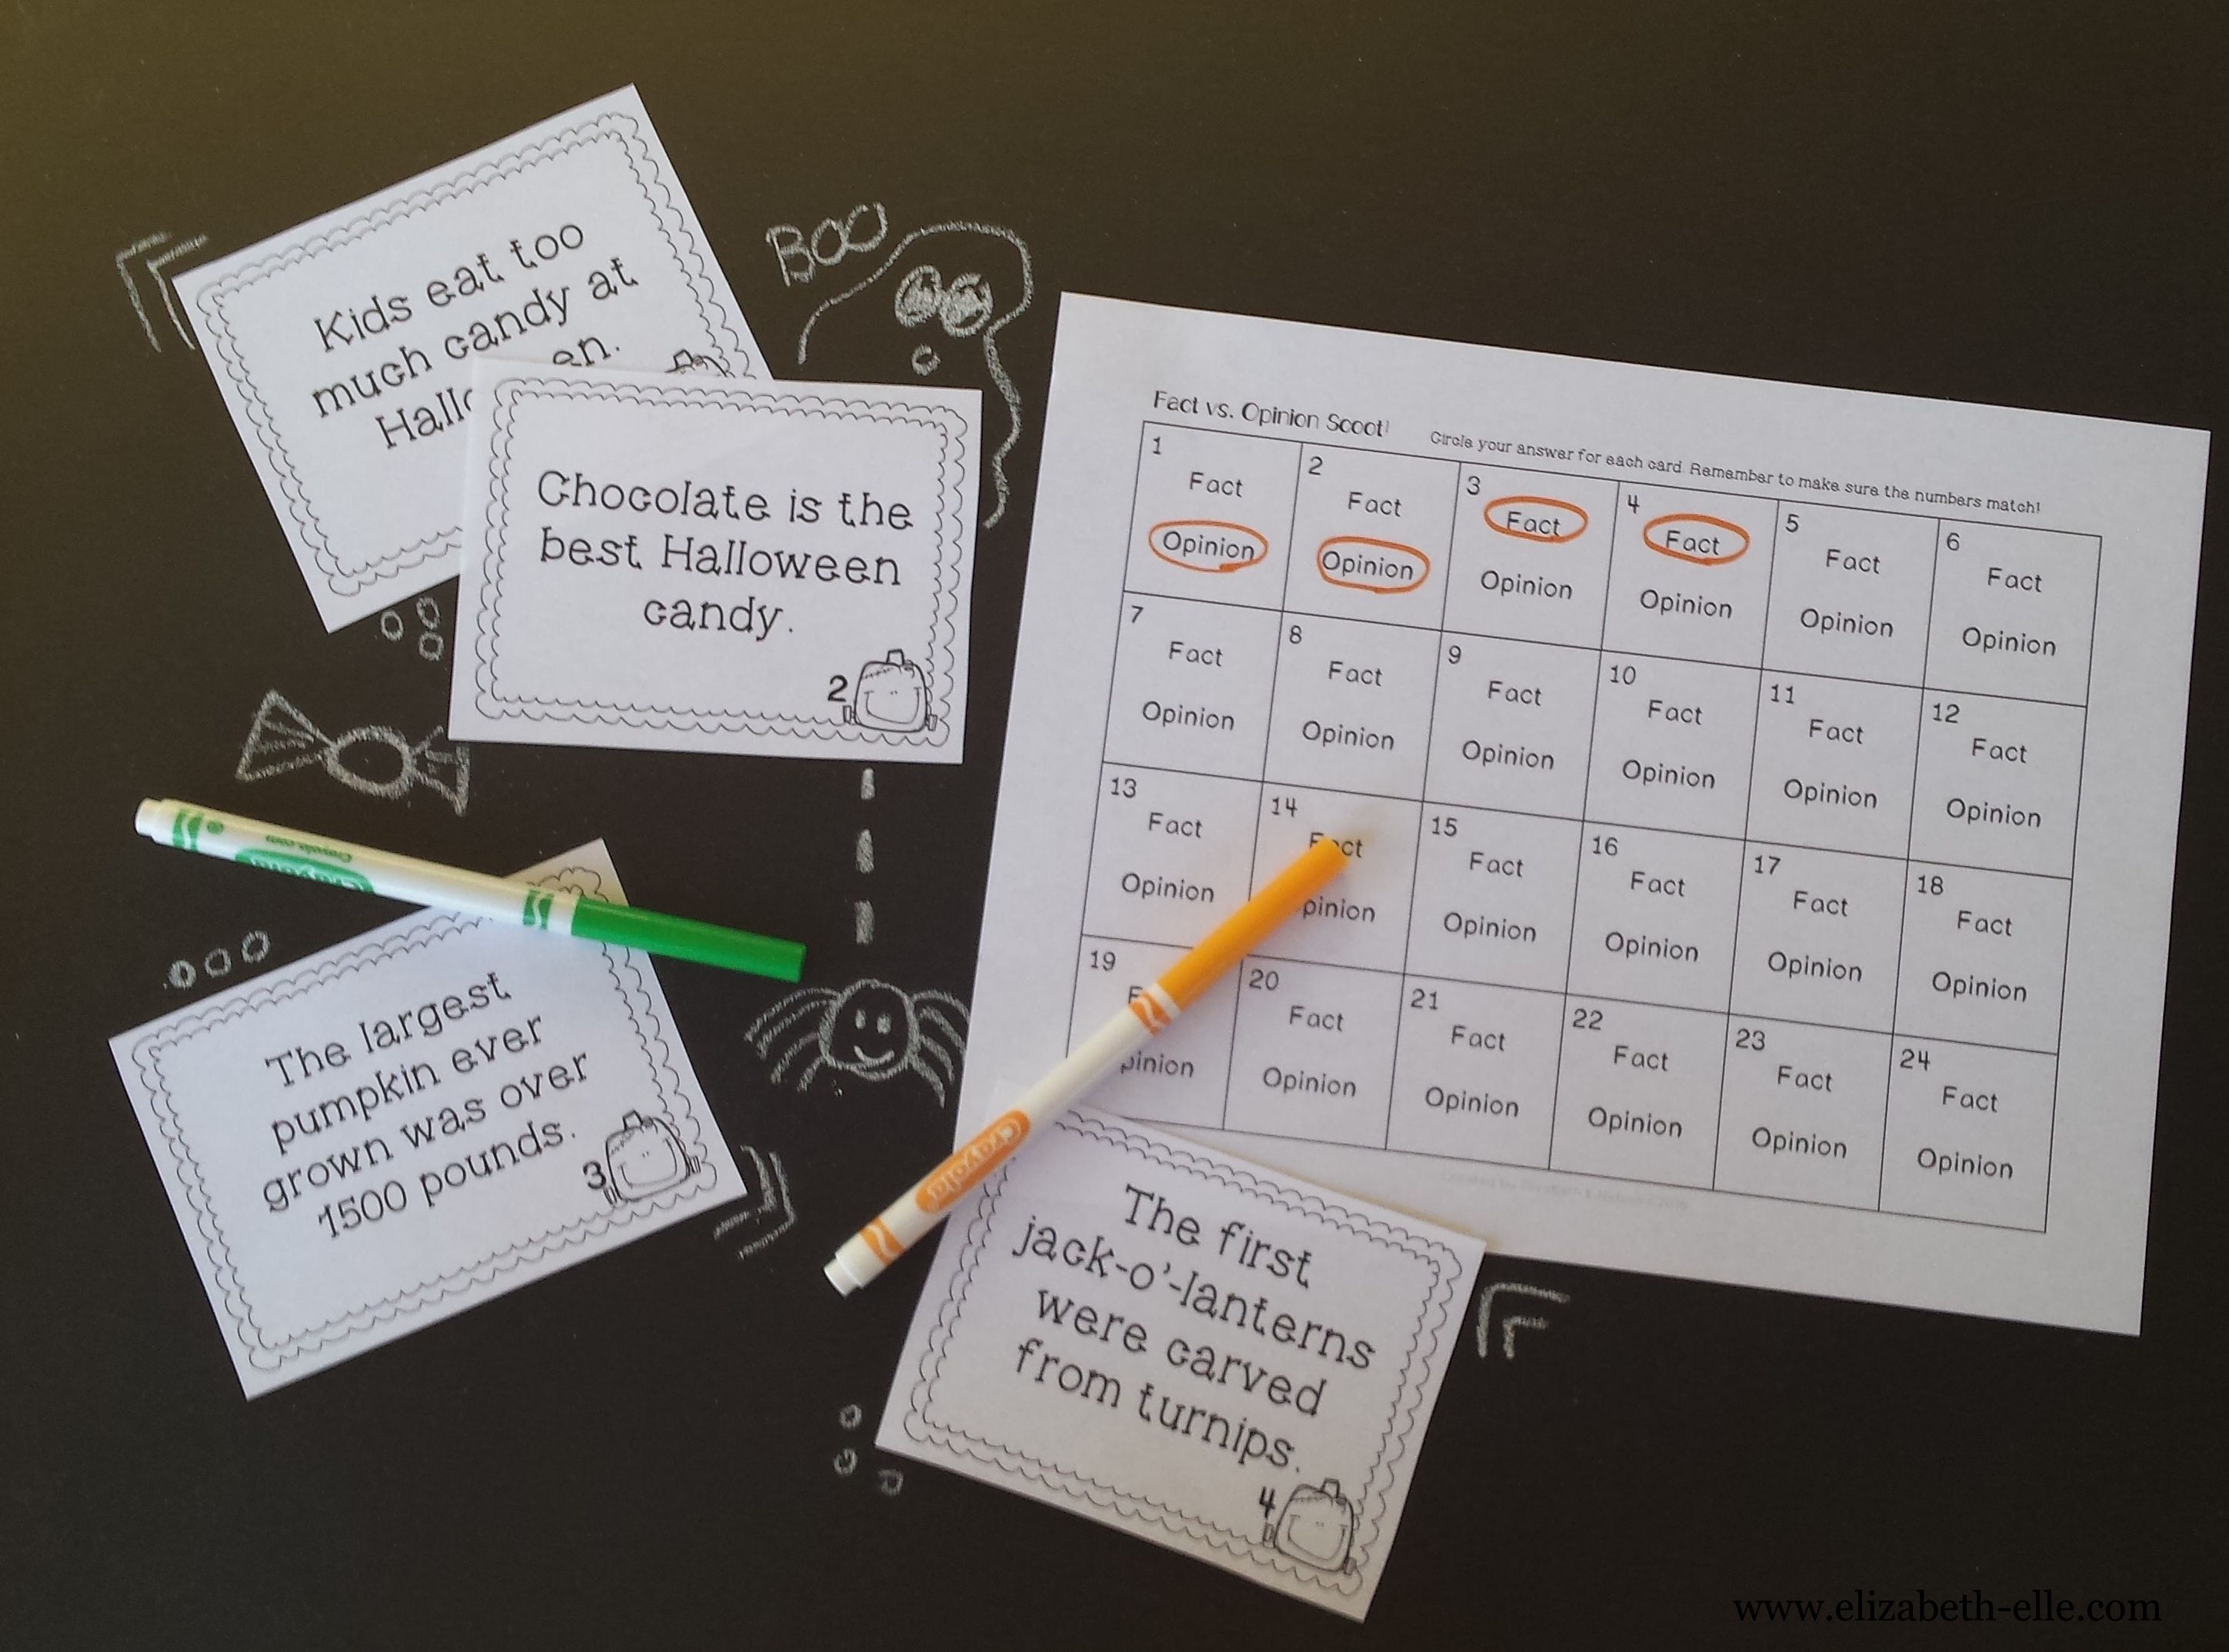 worksheet Fact Opinion Bias Worksheet halloween fact and opinion scoot facts activities taskcards factandopinion bias